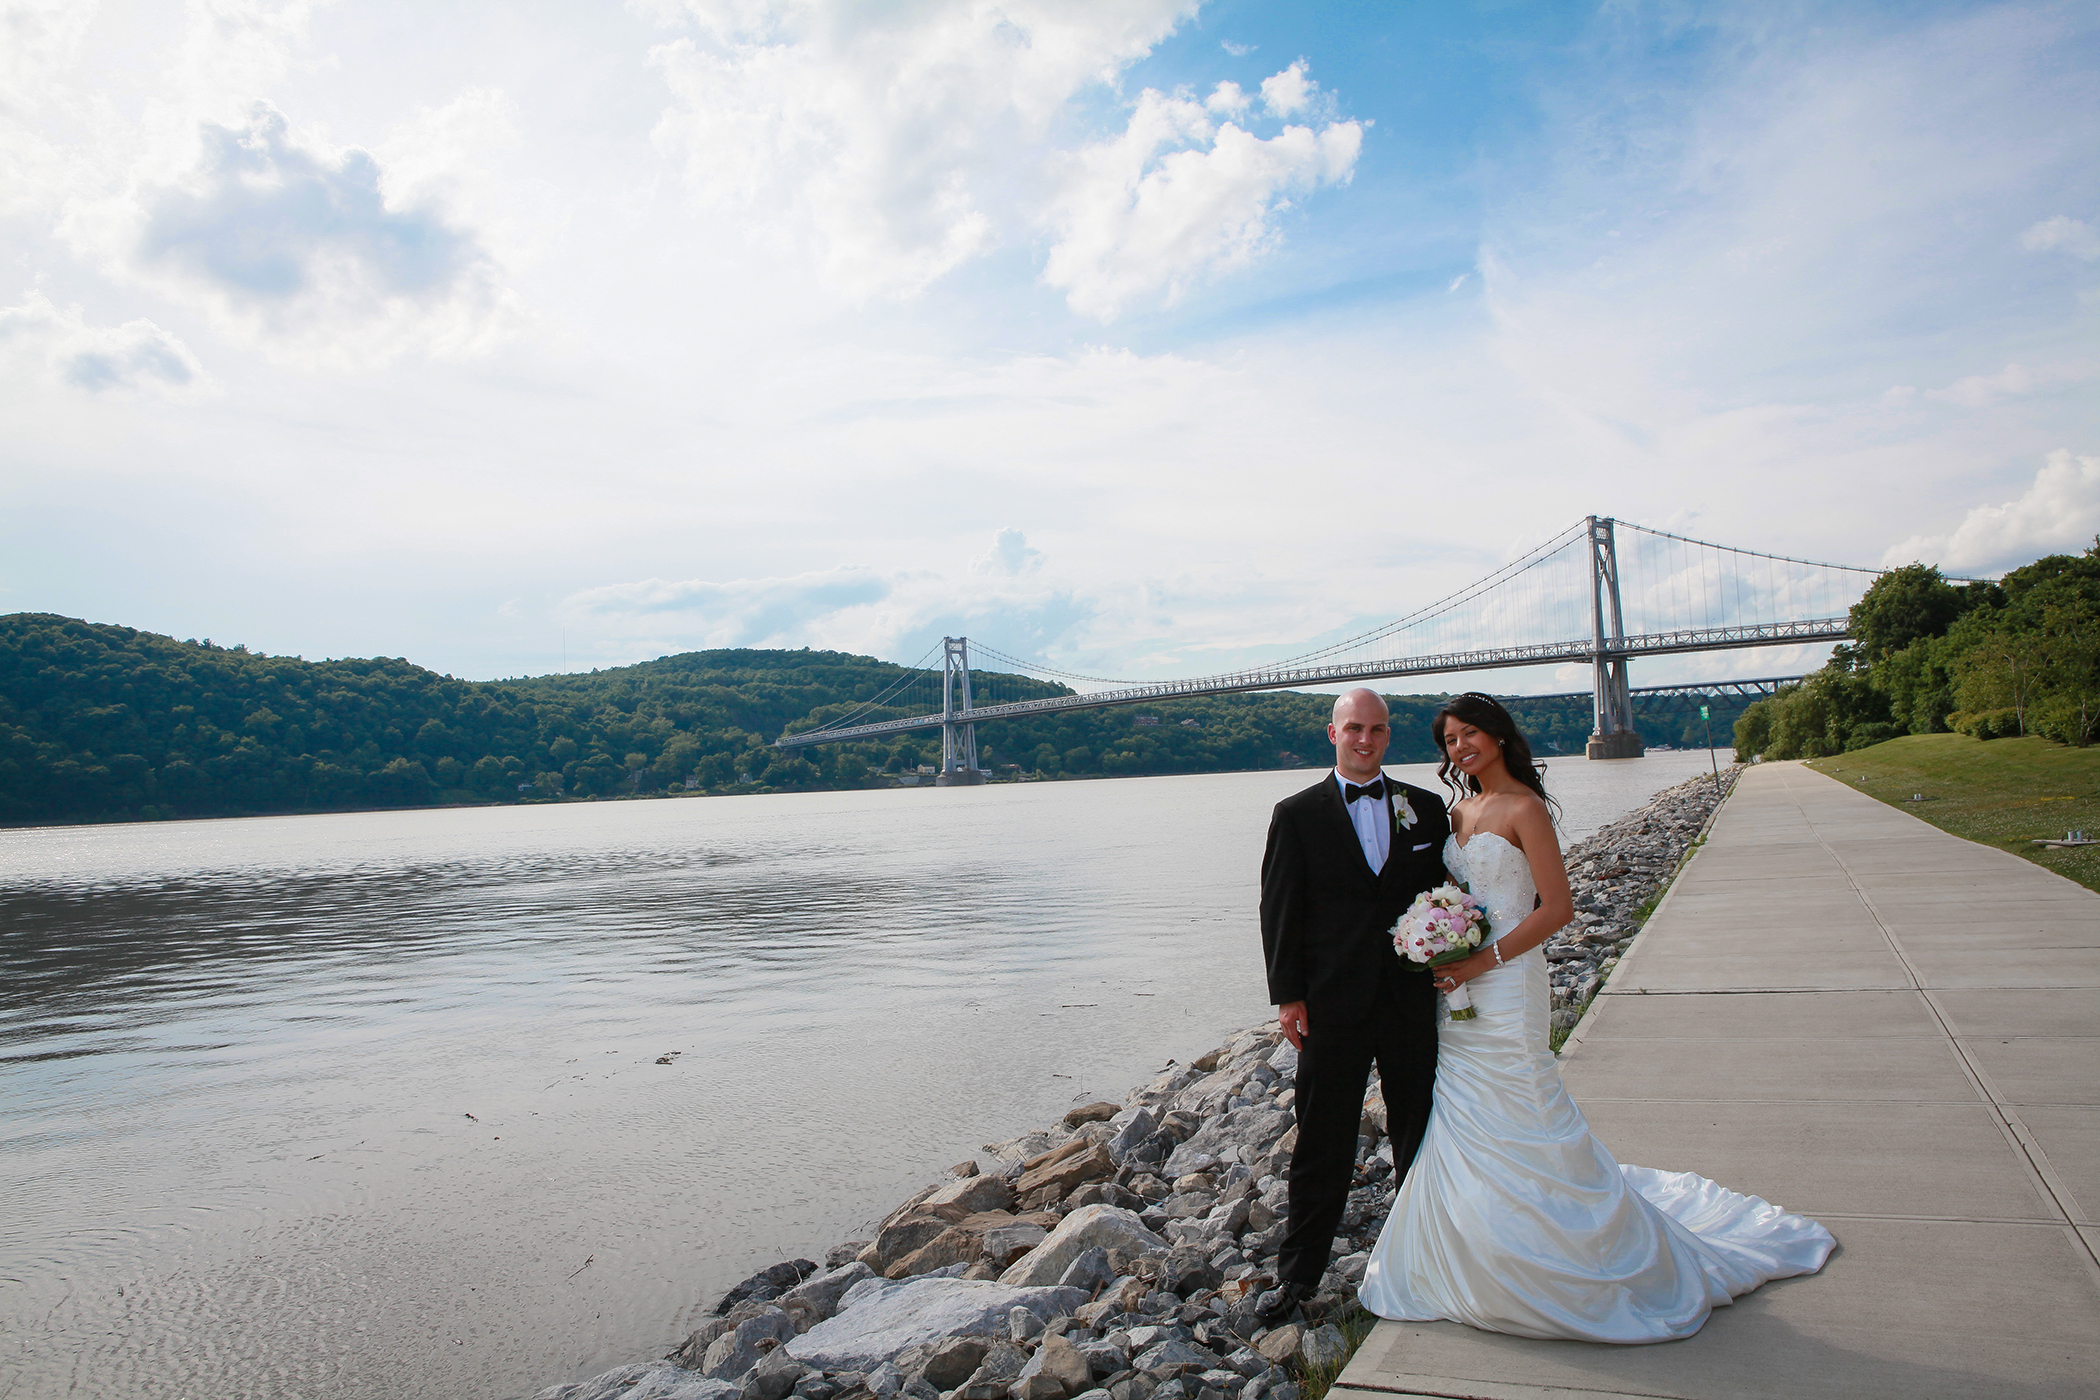 The Grandview in Poughkeepsie Aperture Photography Wedding Photographers